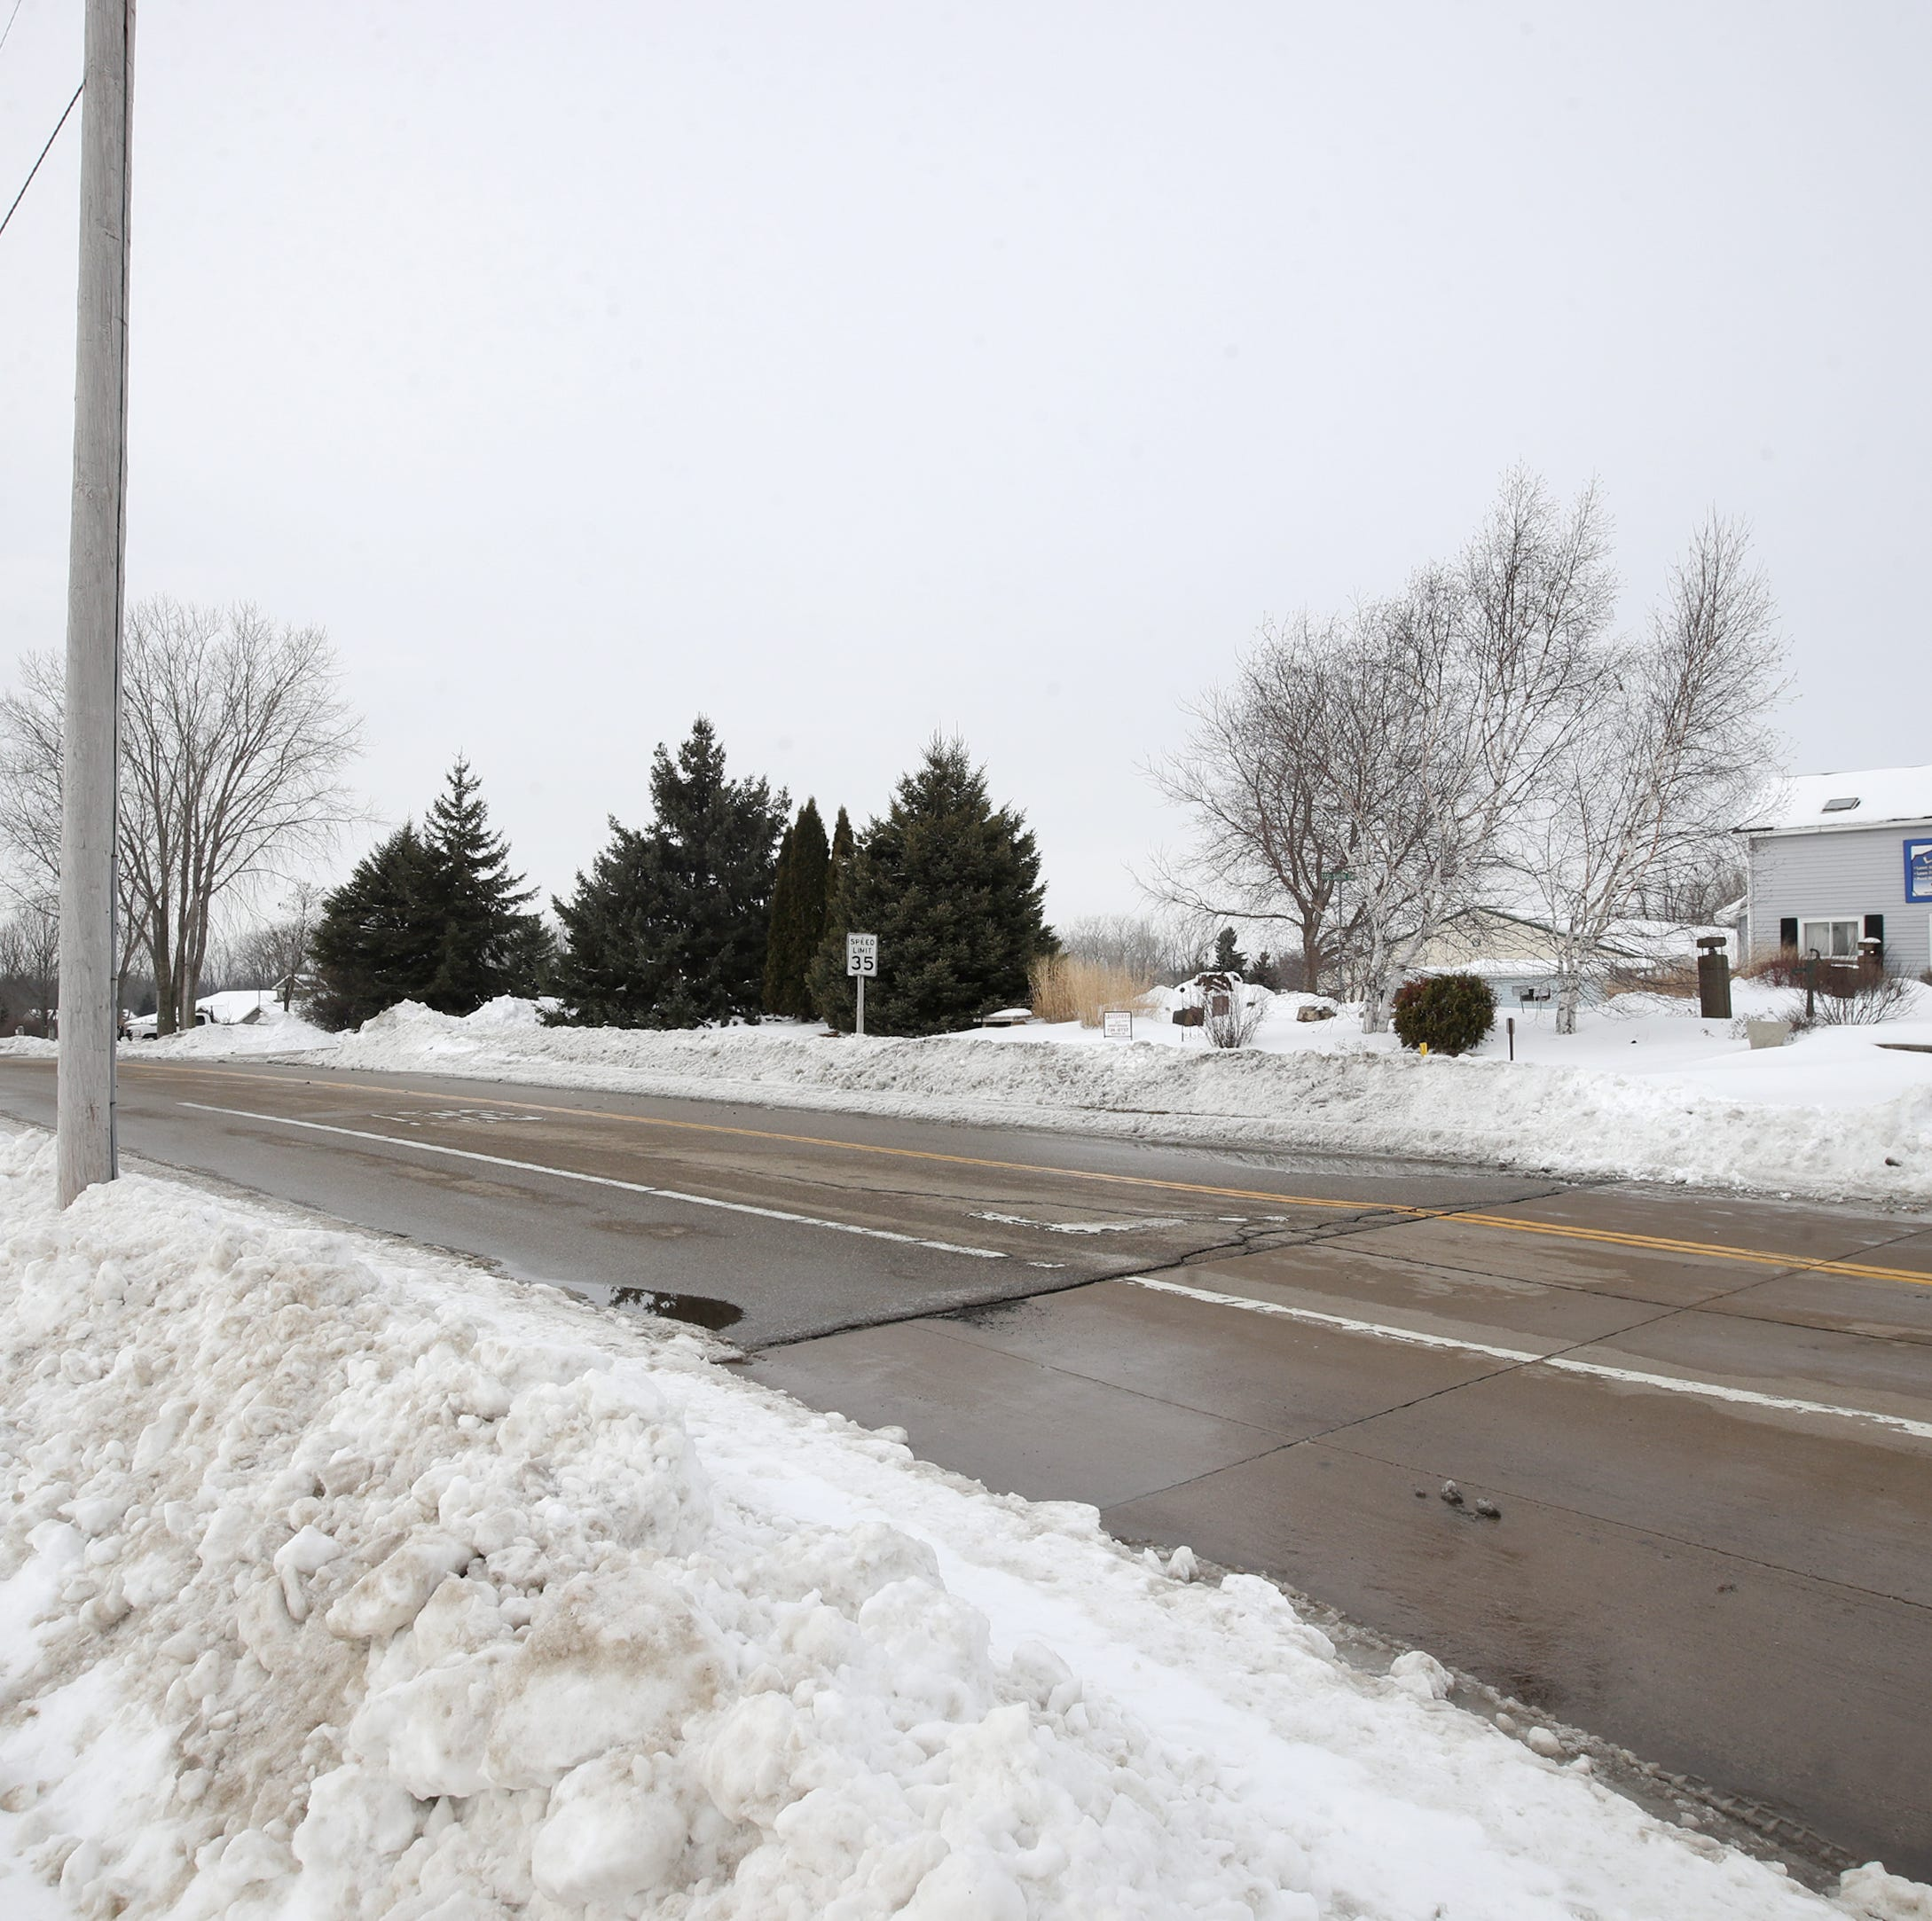 Grand Chute businessman faces whopping $286,577 bill for work on Elsner Road